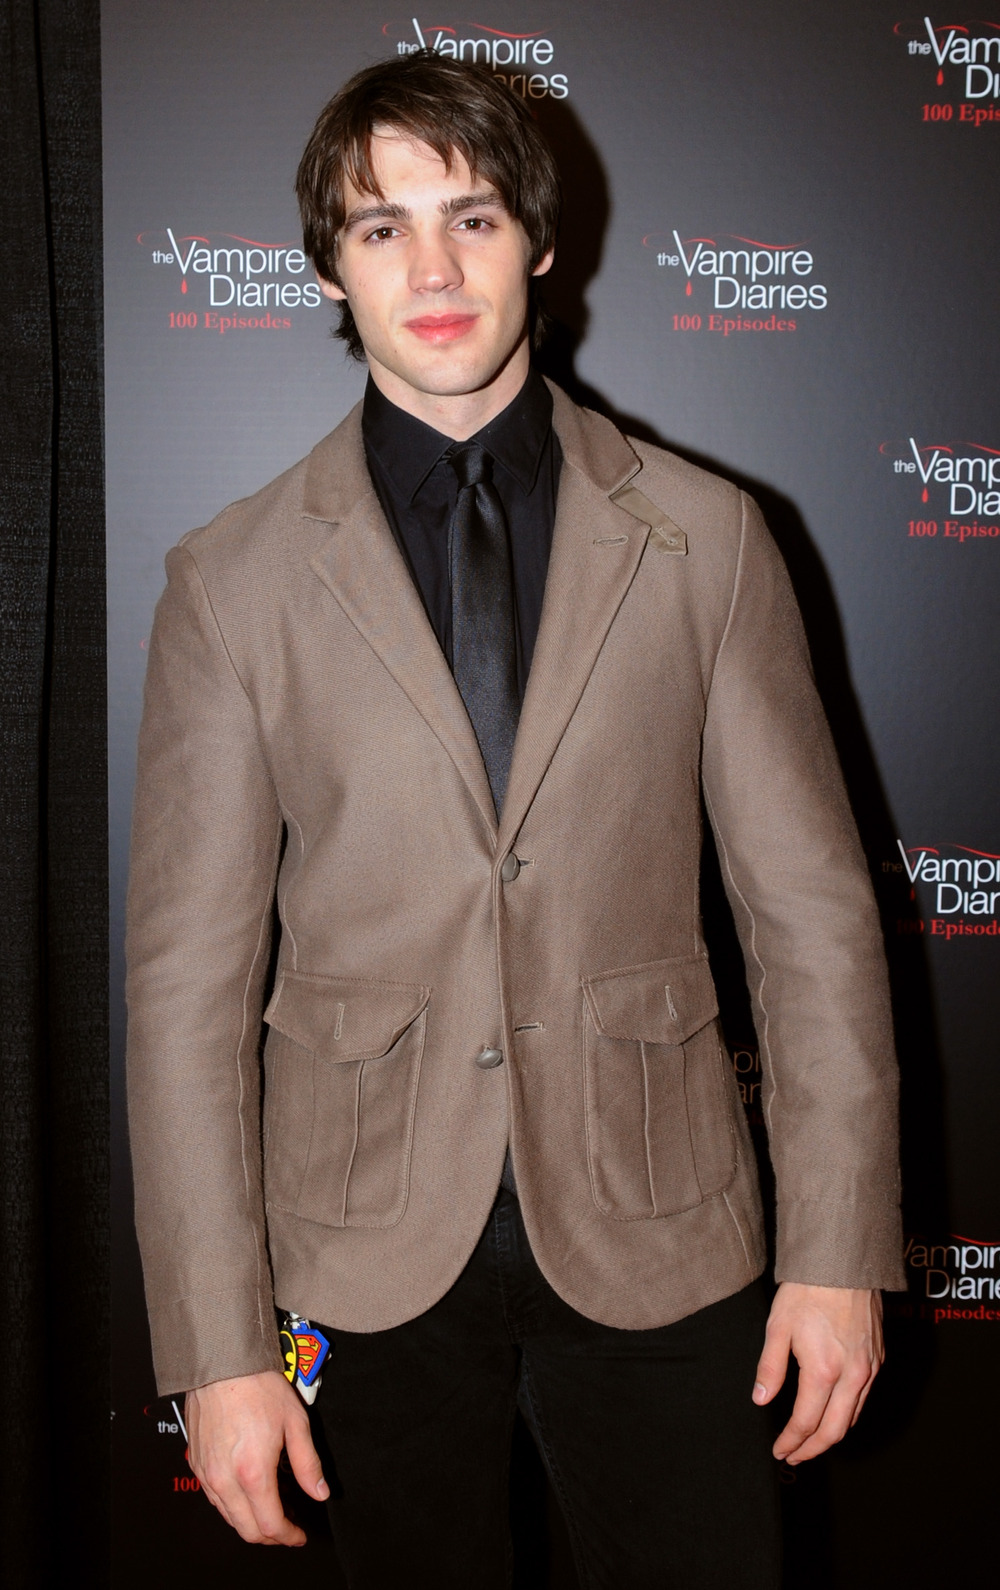 Vampire Diaries Star Steven R. McQueen Opens Up About His Famous Grandfather